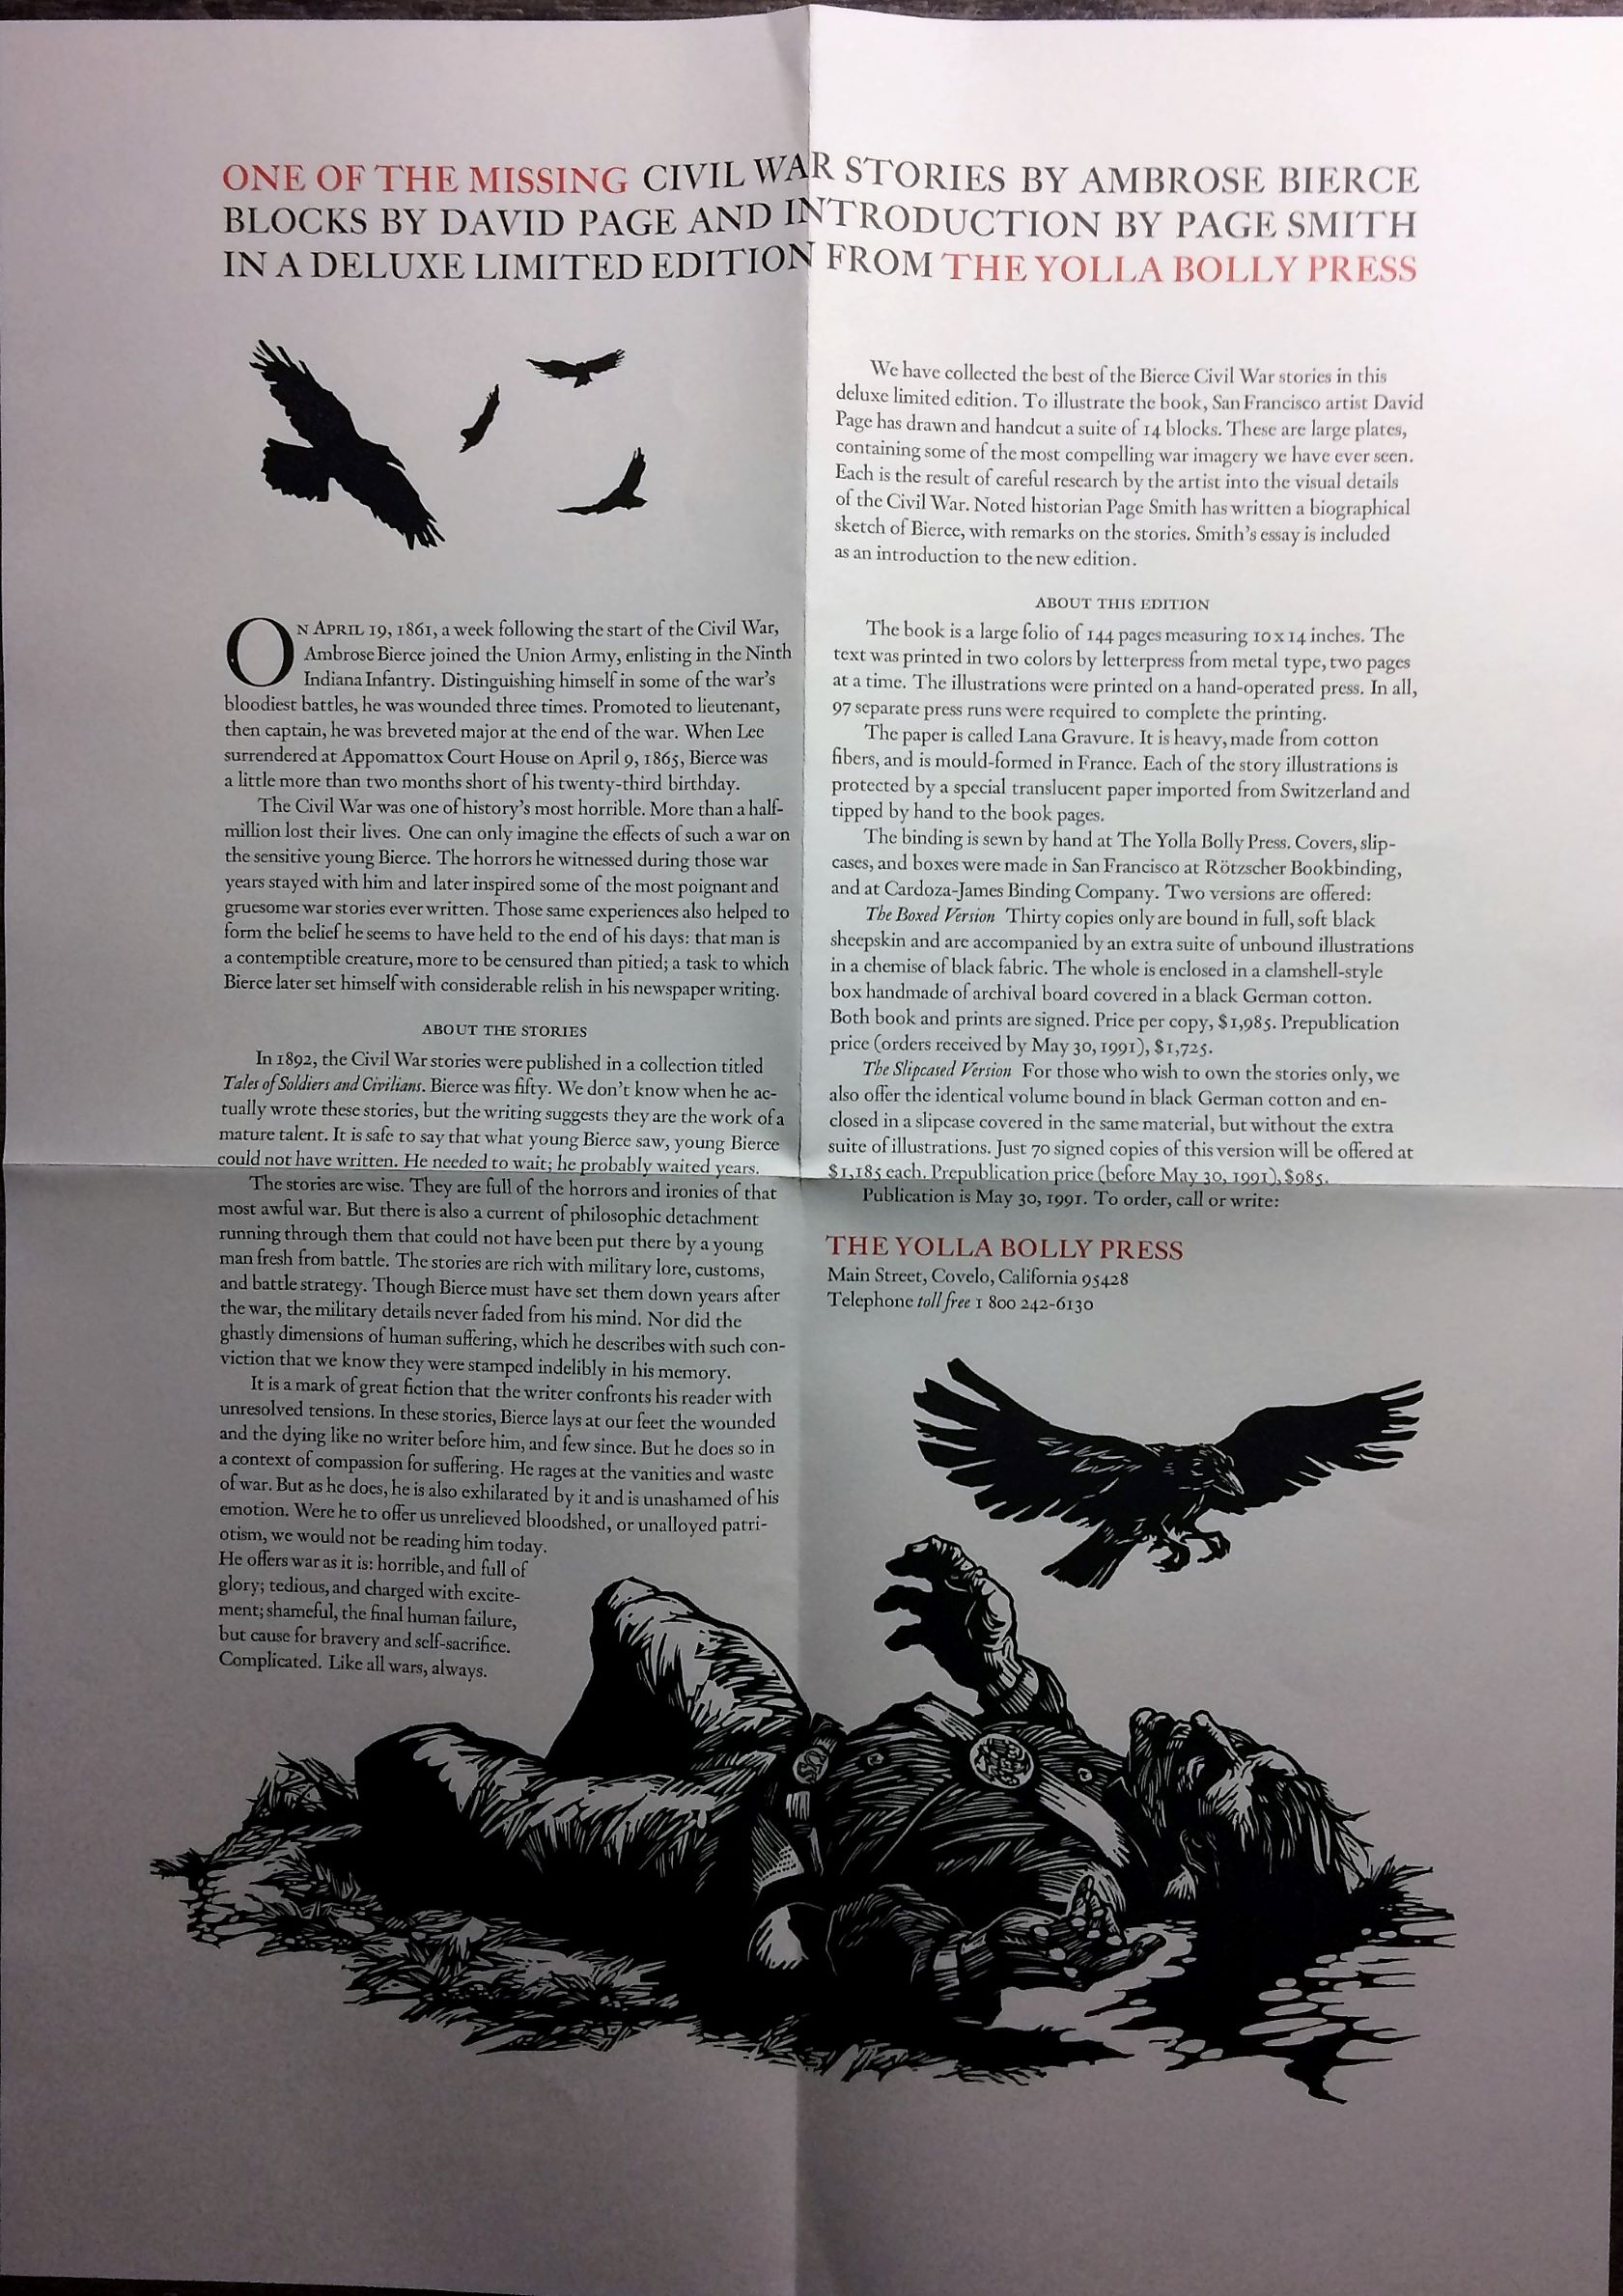 Image for One of the Missing.  With an introduction by Page Smith, and illustrations by David Page.